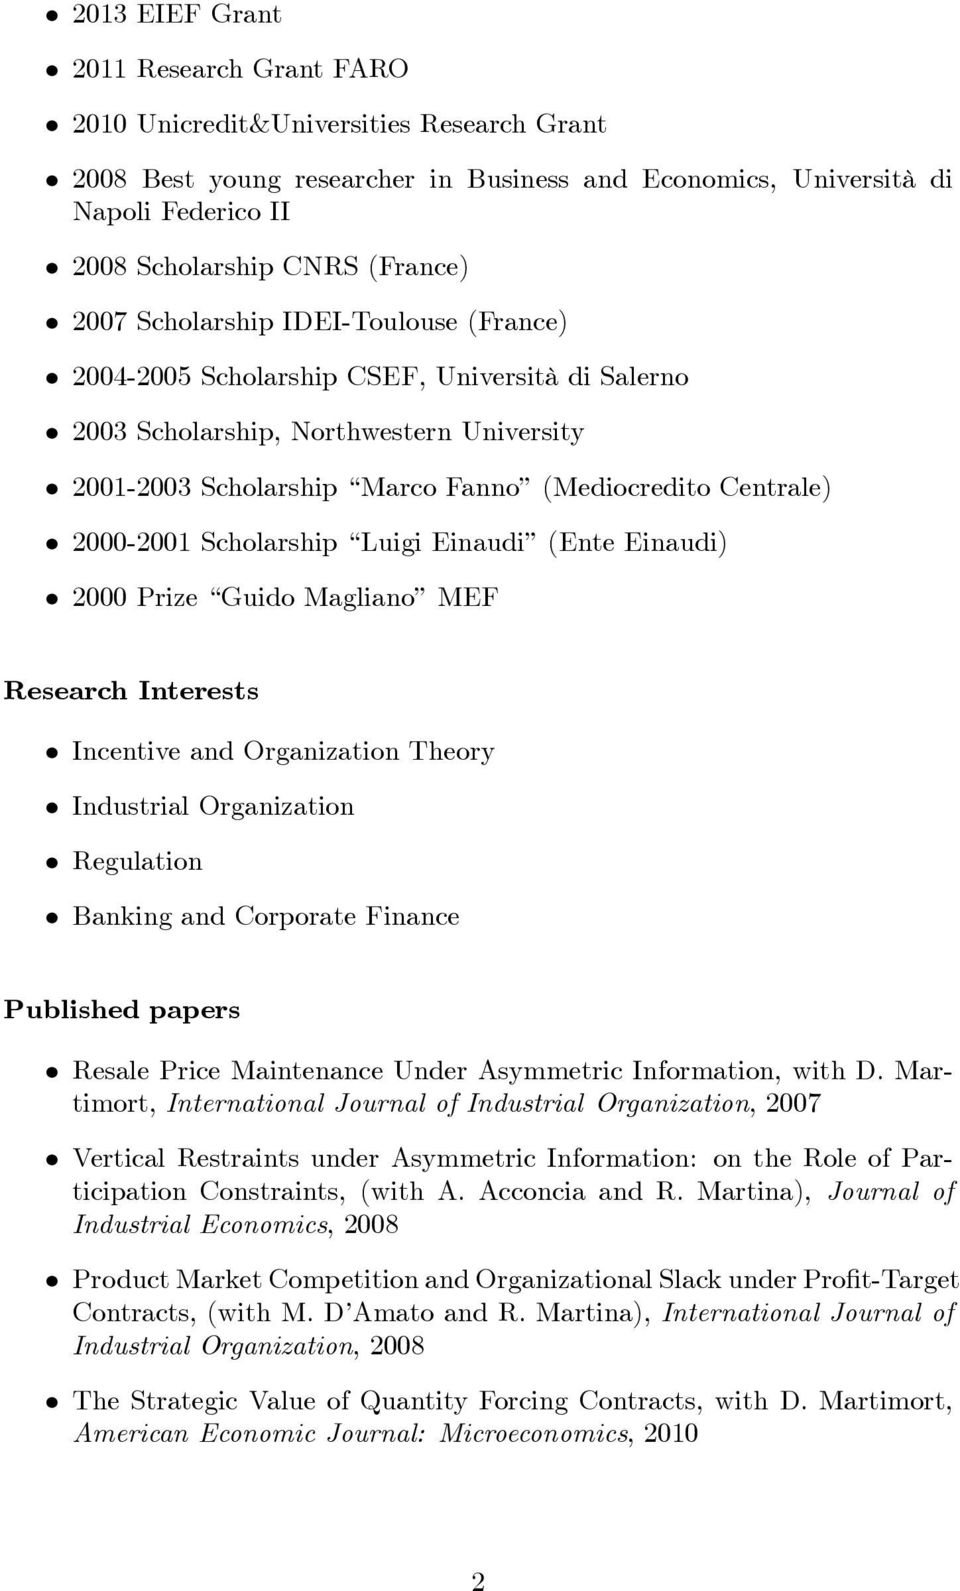 2000-2001 Scholarship Luigi Einaudi (Ente Einaudi) 2000 Prize Guido Magliano MEF Research Interests Incentive and Organization Theory Industrial Organization Regulation Banking and Corporate Finance